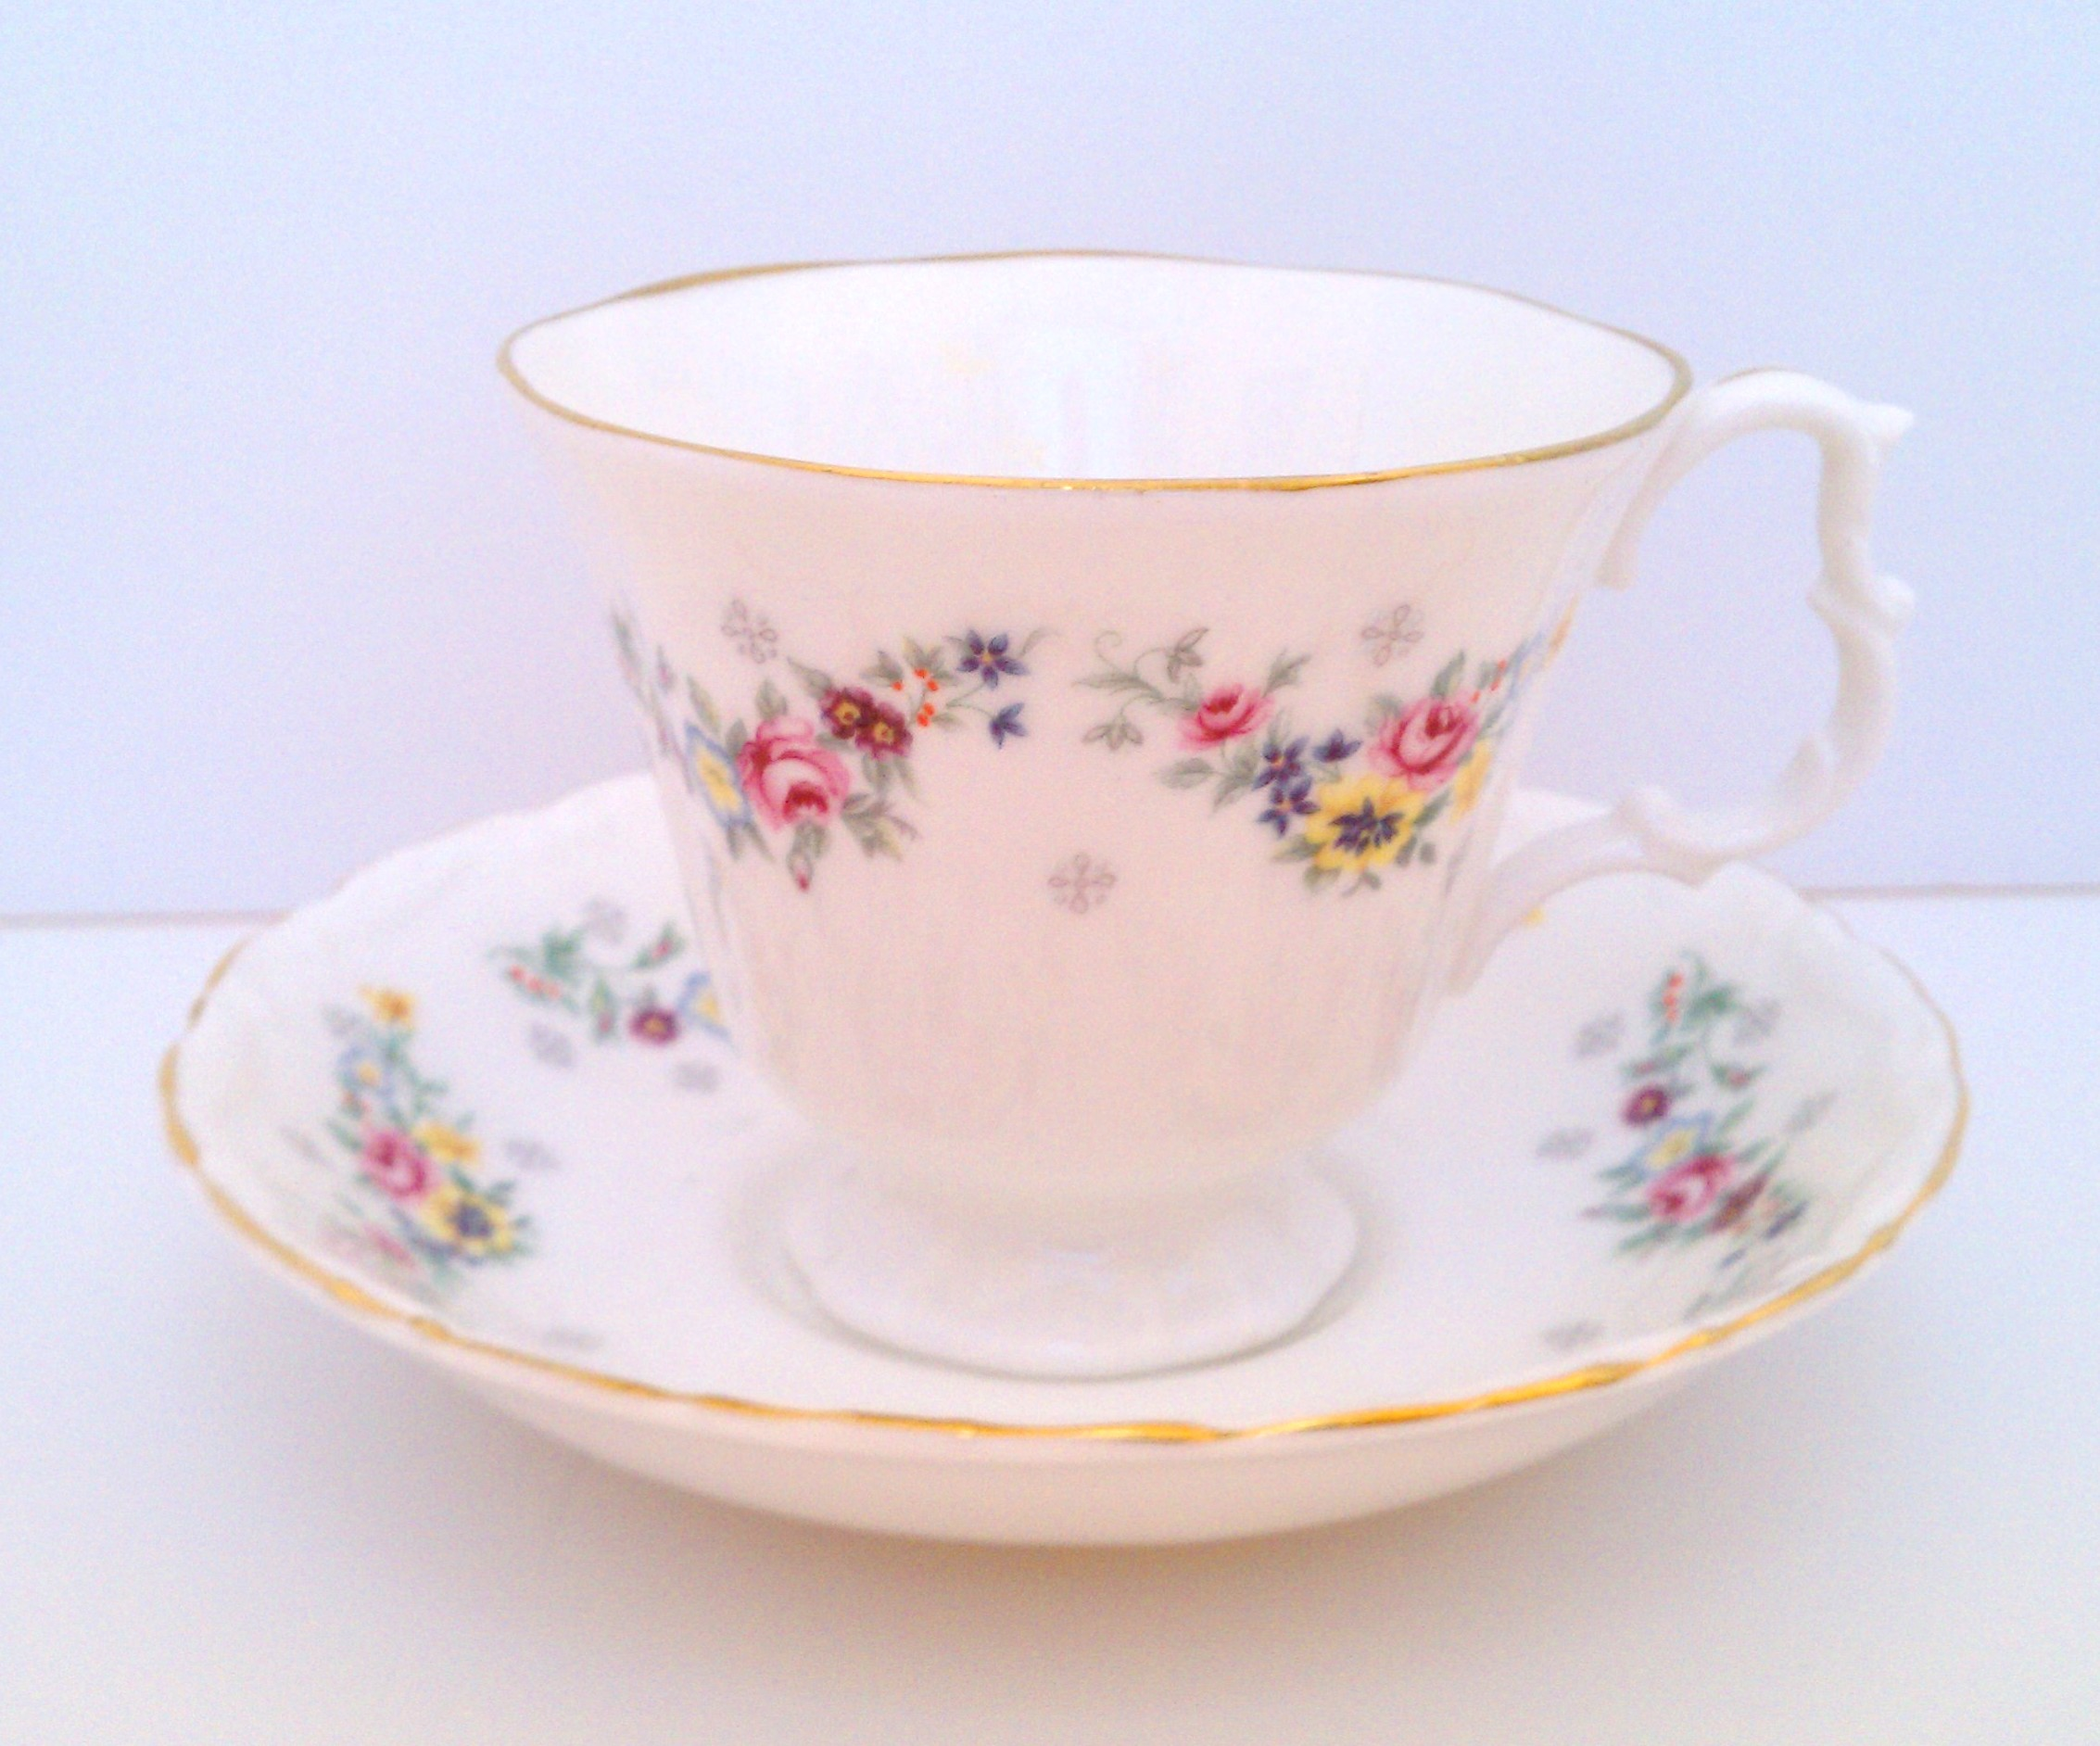 Royal Kent cup and saucer made in Staffordshire, England